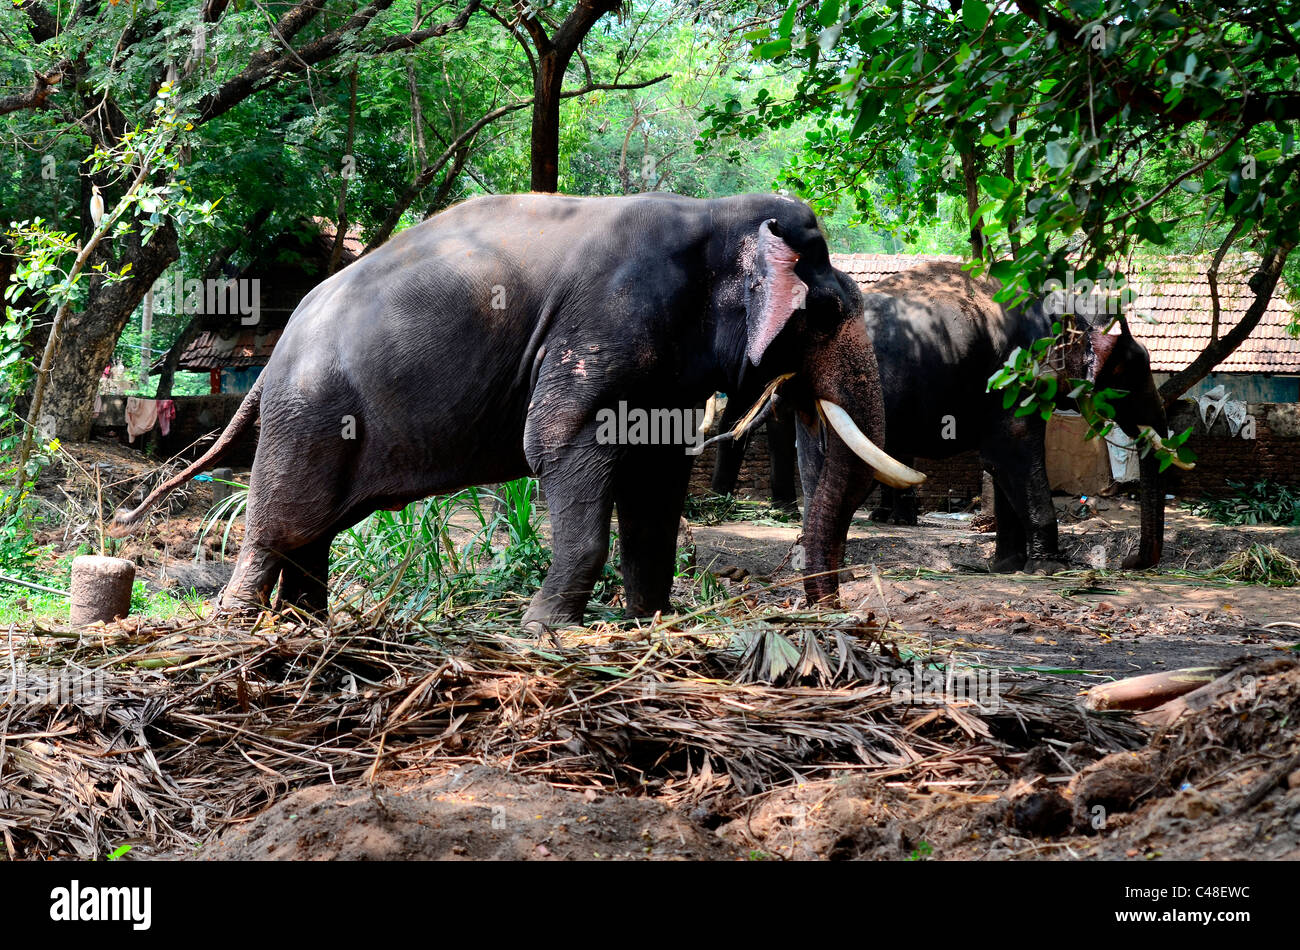 Elephants in a temple of Kerala,India - Stock Image